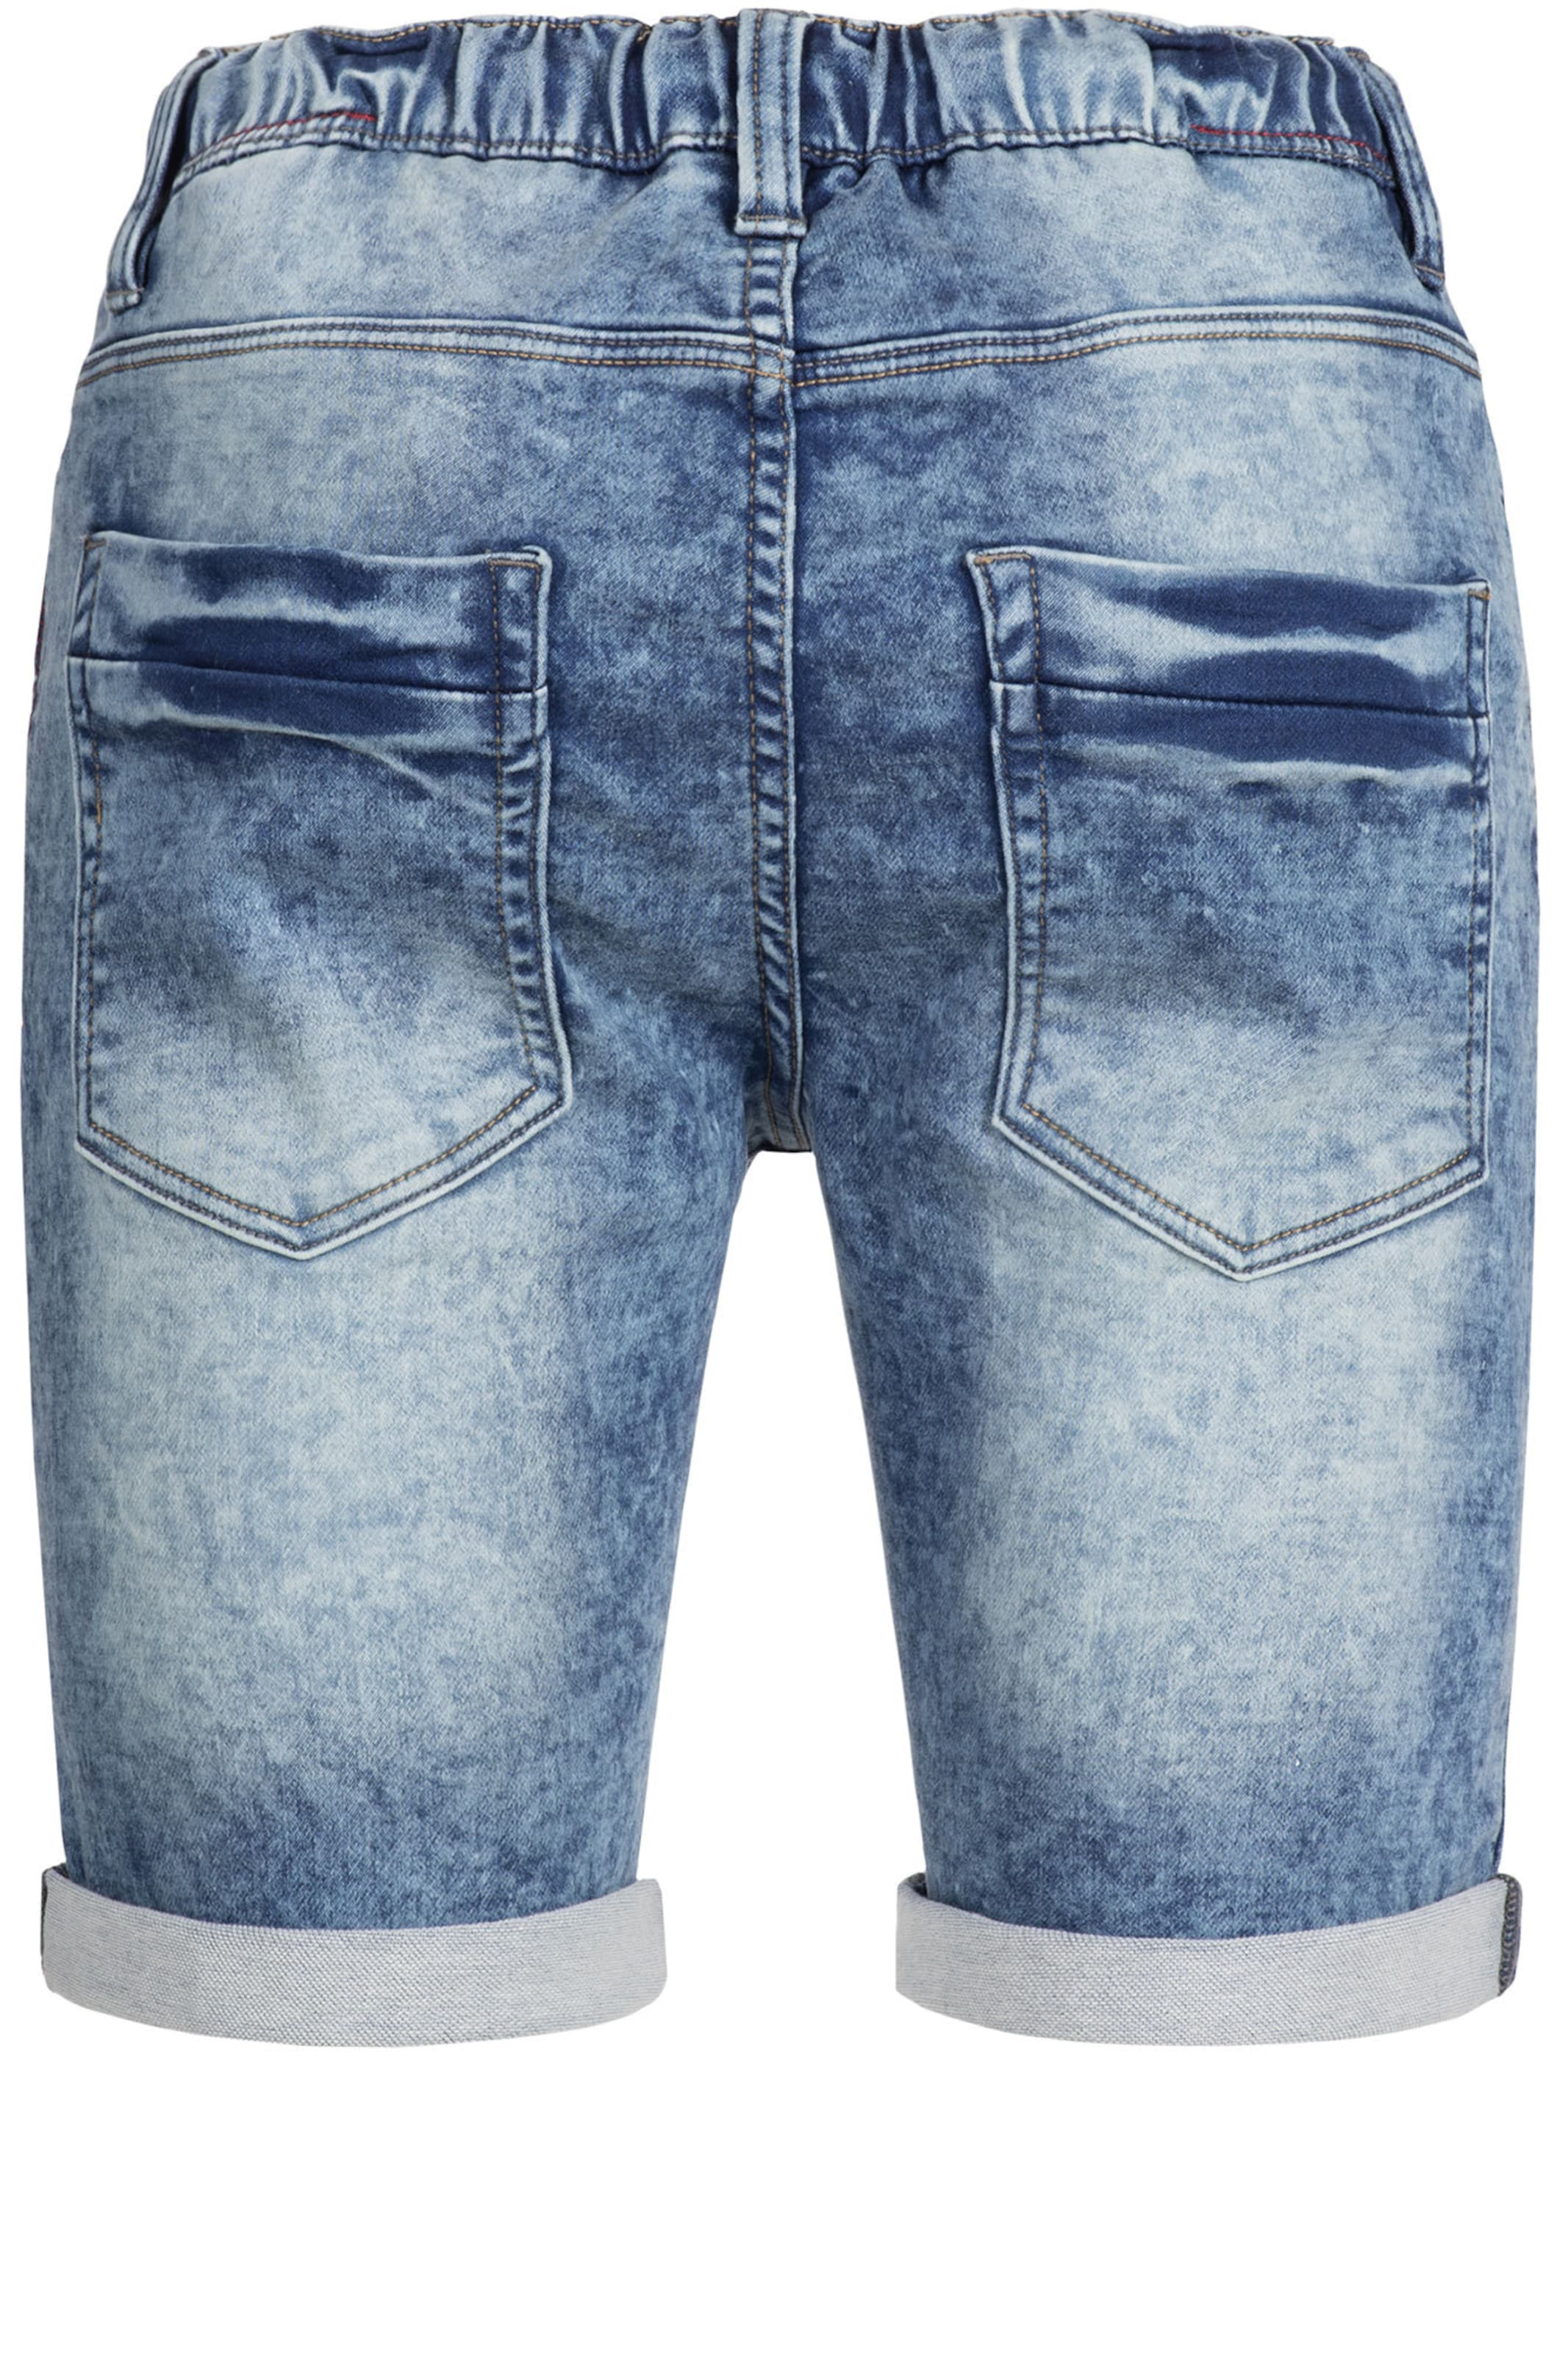 Jeans Shorts' Indicode Shorts 'kadin Blue In Denim kZuOPXiT